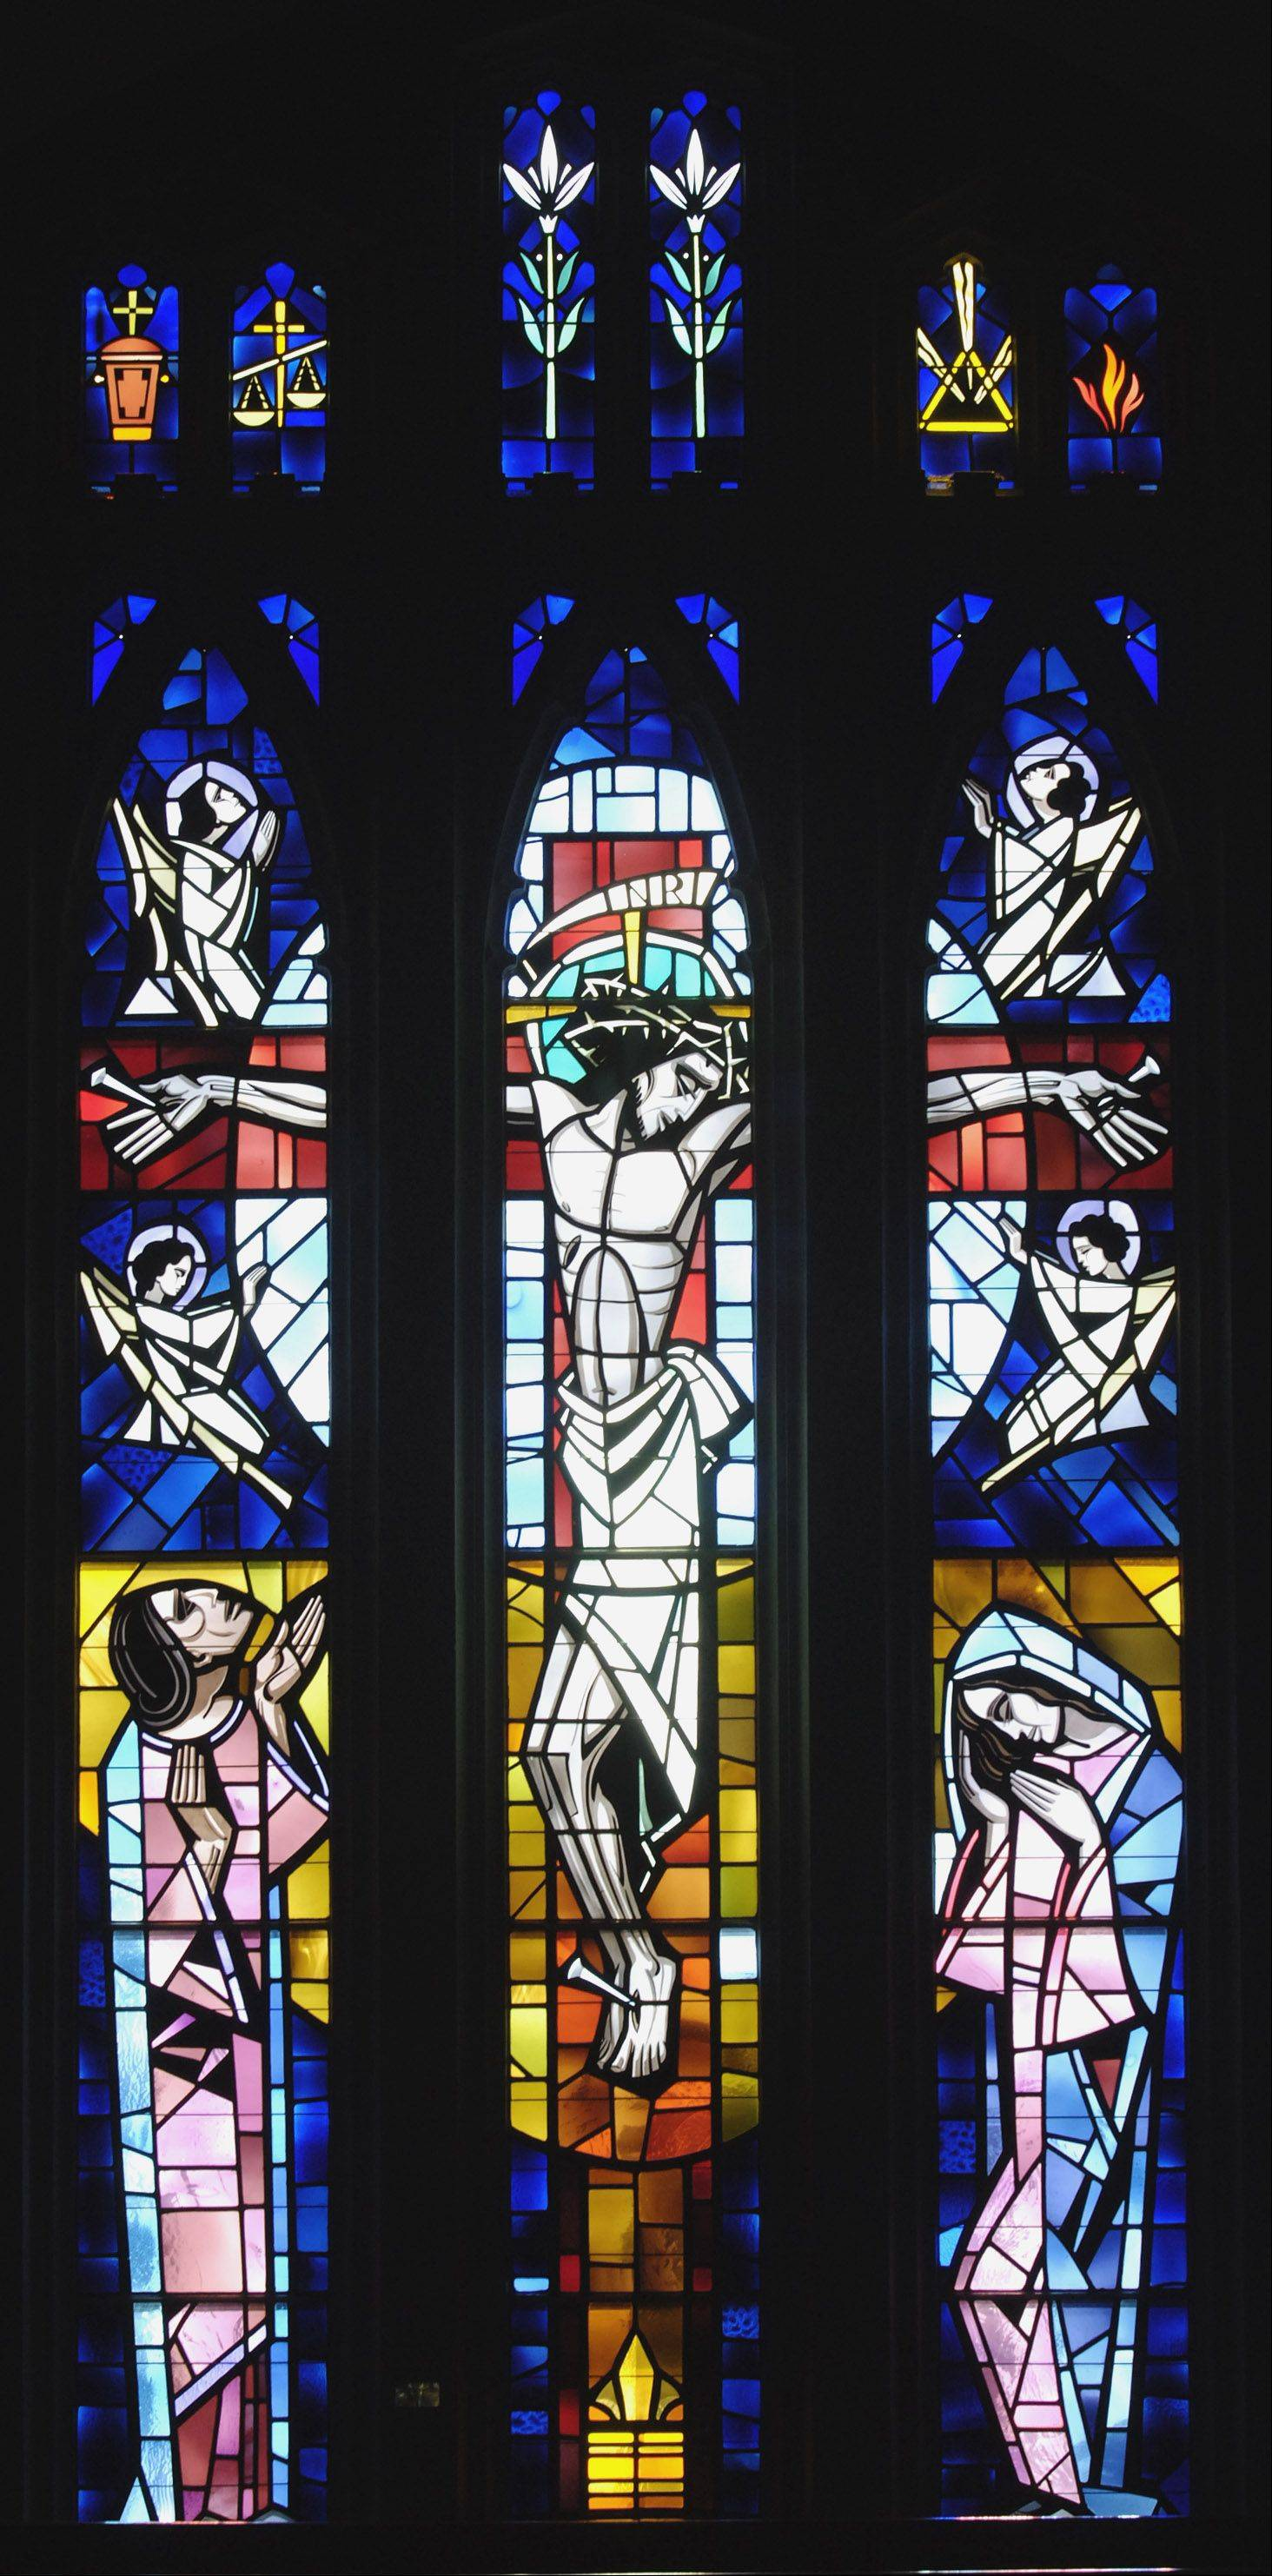 Illustrating the Crucifixion, this window was installed in 1965 in the south wall of First United Methodist Church in Elgin. It was the second in a 10-year program to replace old windows in the church for windows created by one of the nation's foremost stained-glass designers, according to the church. The church became a showcase of the work of Conrad Pickel of New Berlin, Wis., and includes more than 40 windows.